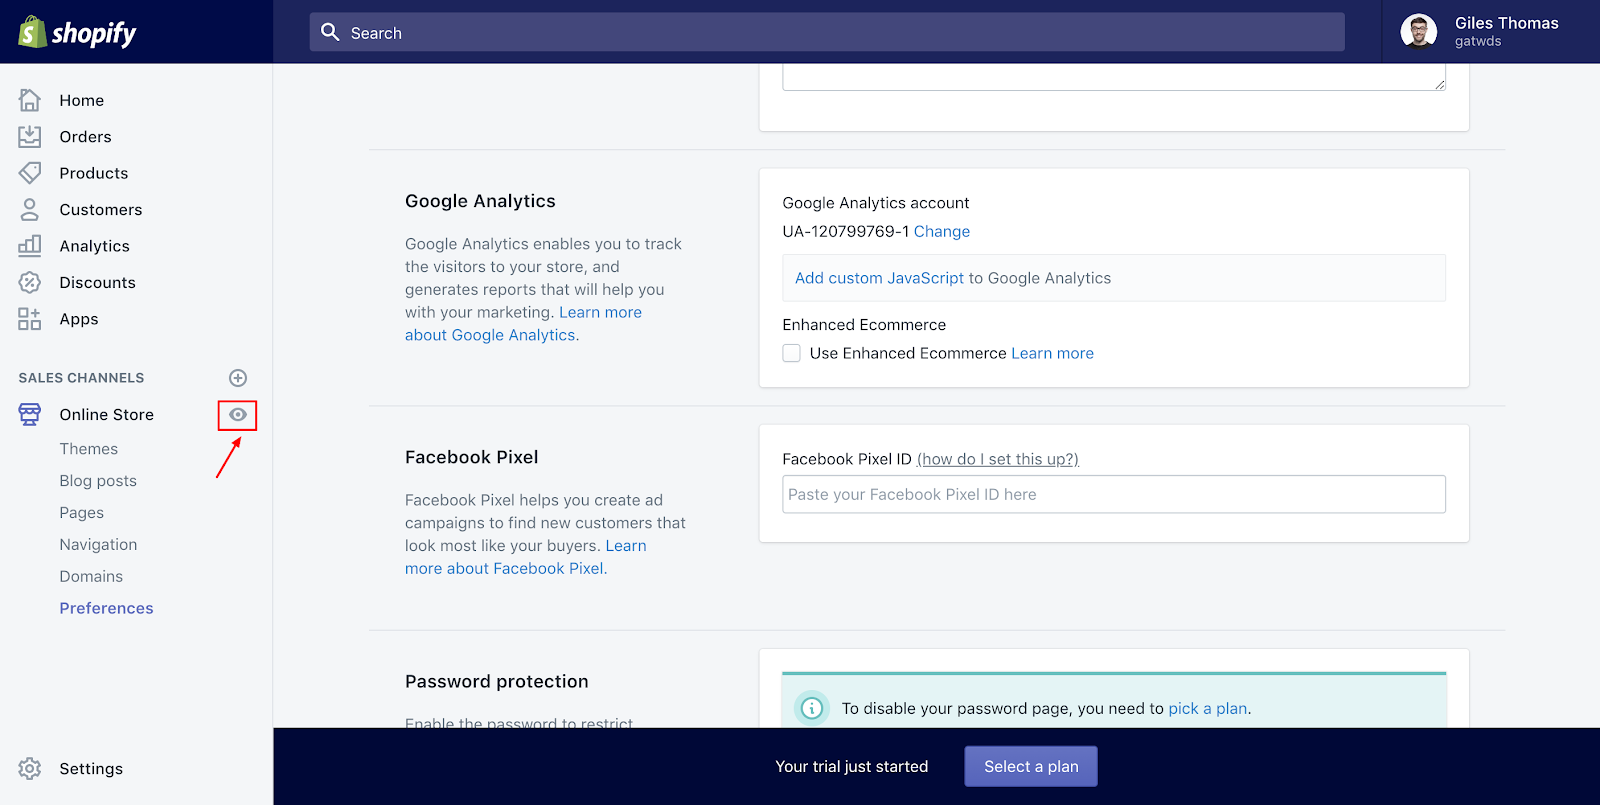 Screenshot showing a settings page on the Shopify dashboard